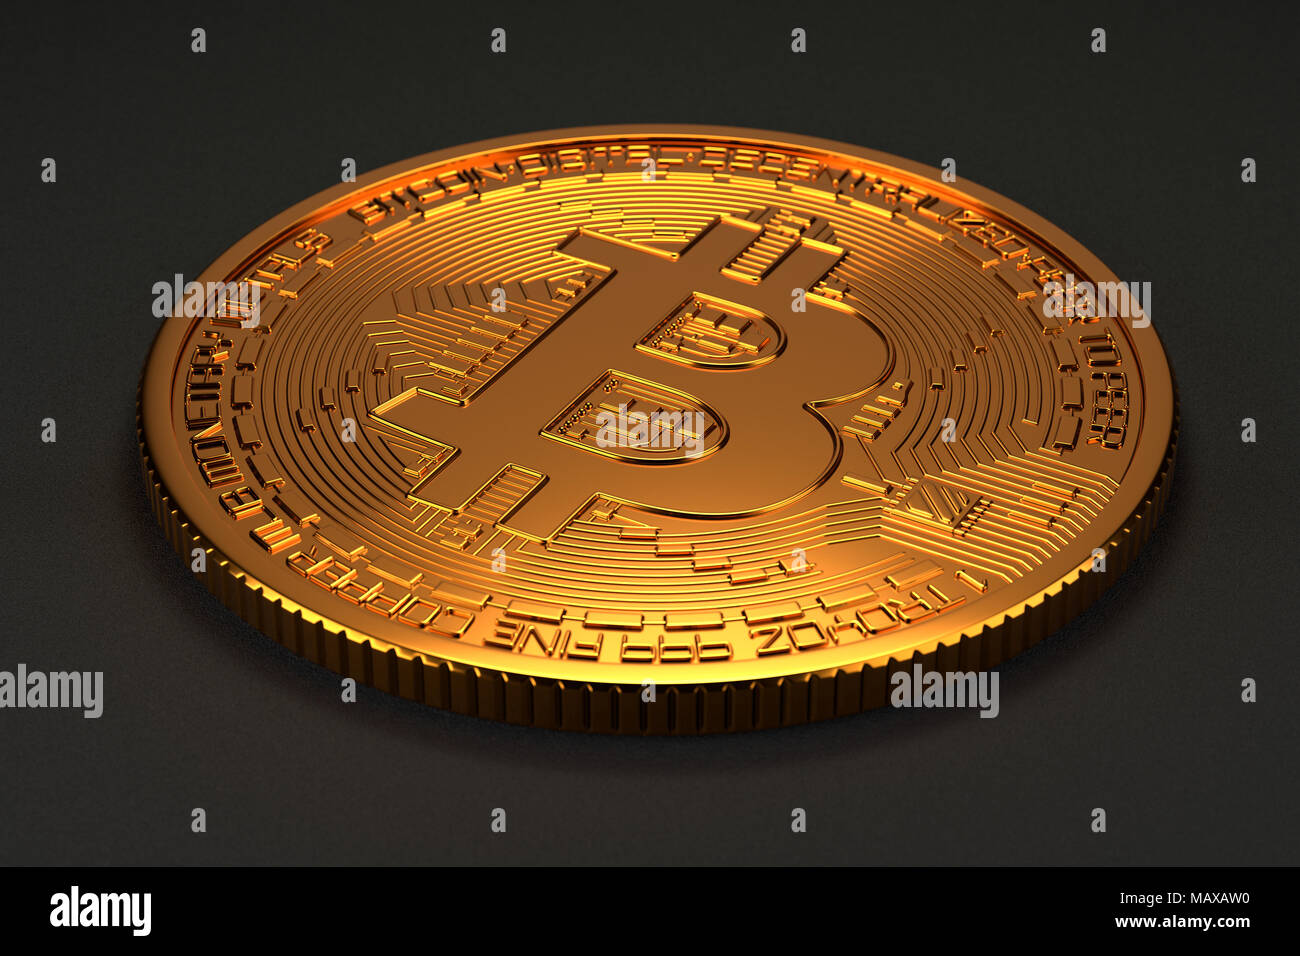 Bitcoin isolated on dark background with slight depth of field blur. Illustrates bitcoin, cryptocurrency, crypto mining, or blockchain coins. - Stock Image